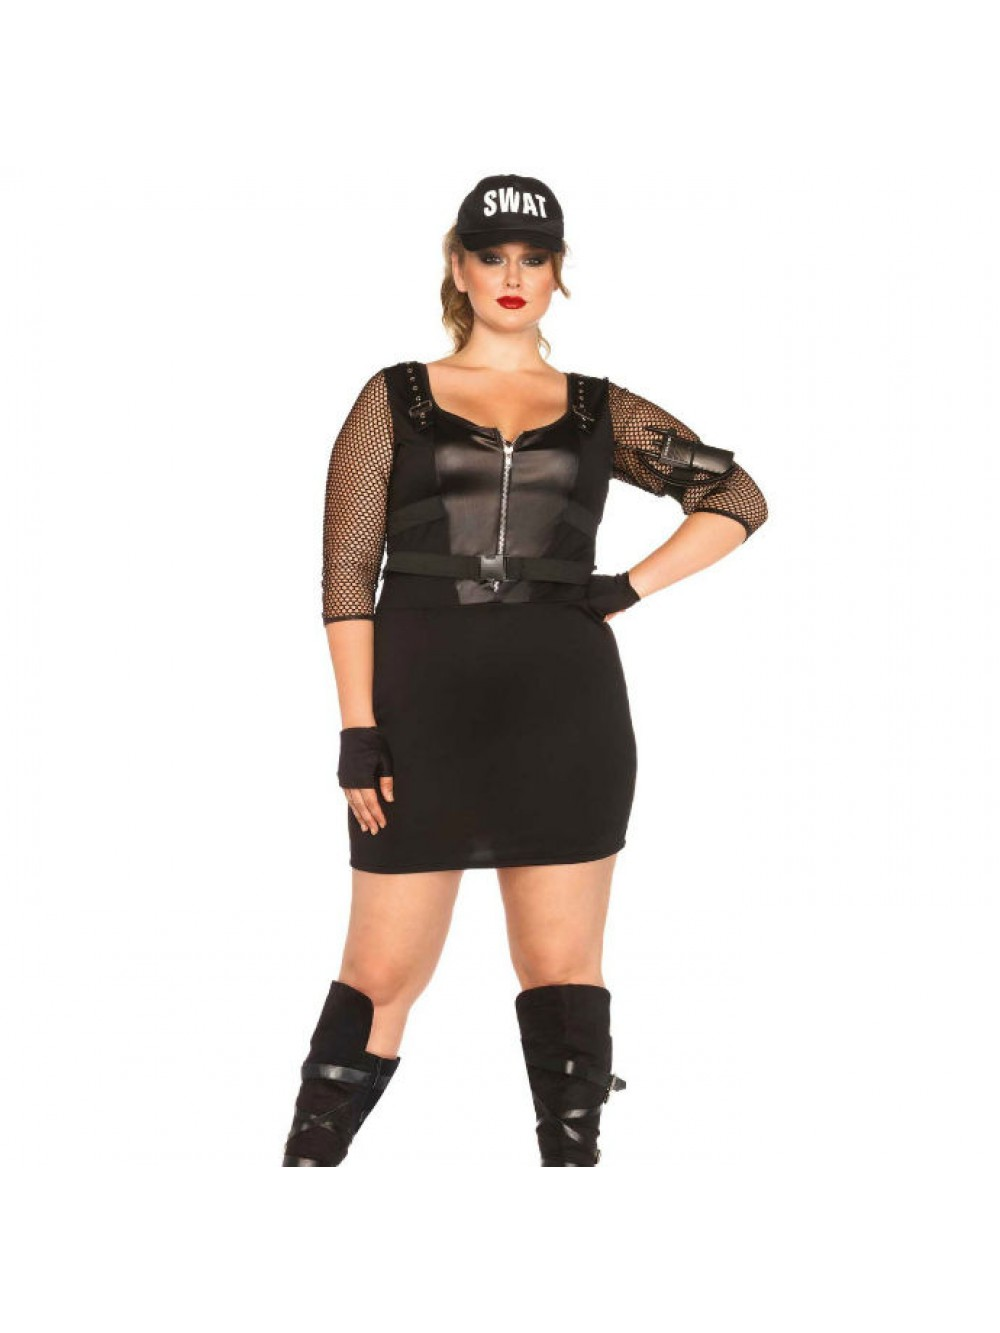 LEG AVENUE SWAT OFFICER PLUS SIZE 1X/2X